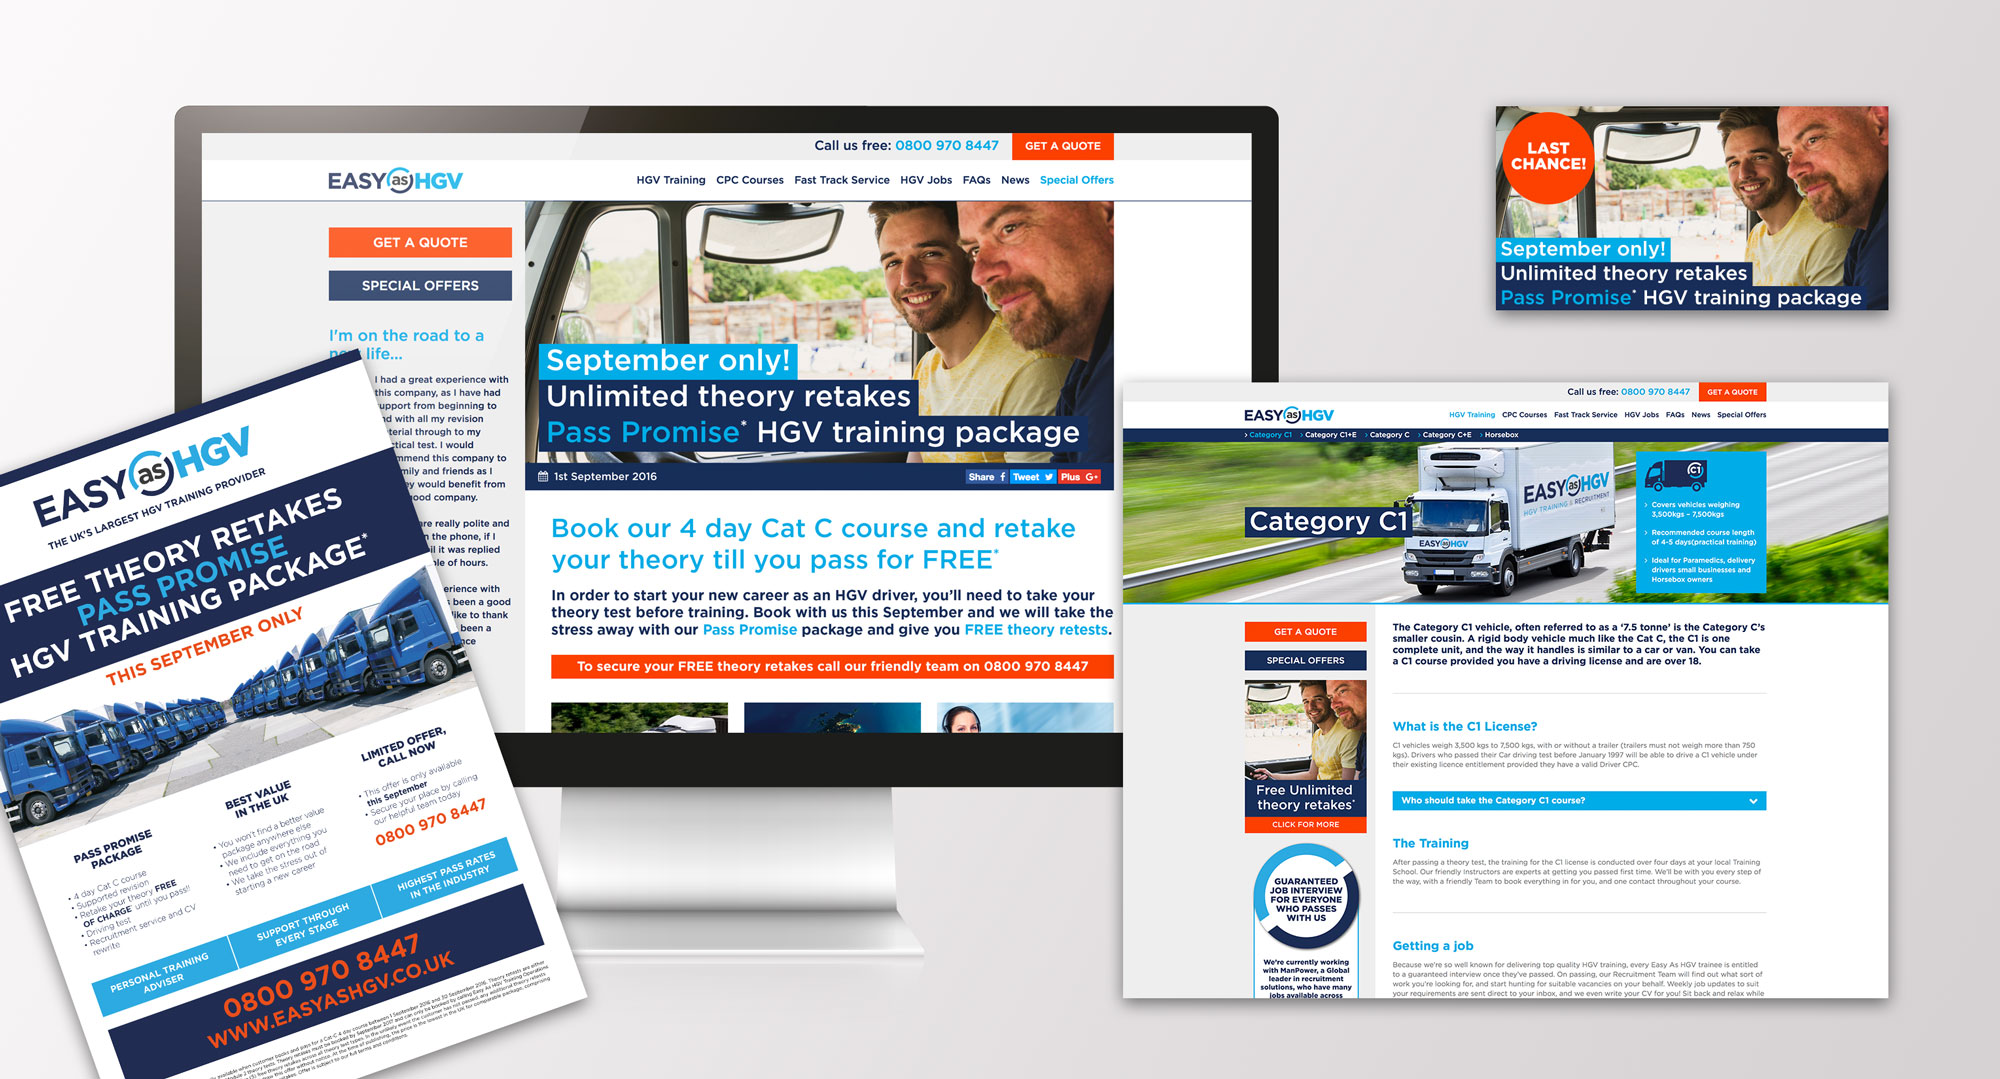 easy as hgv campaign work